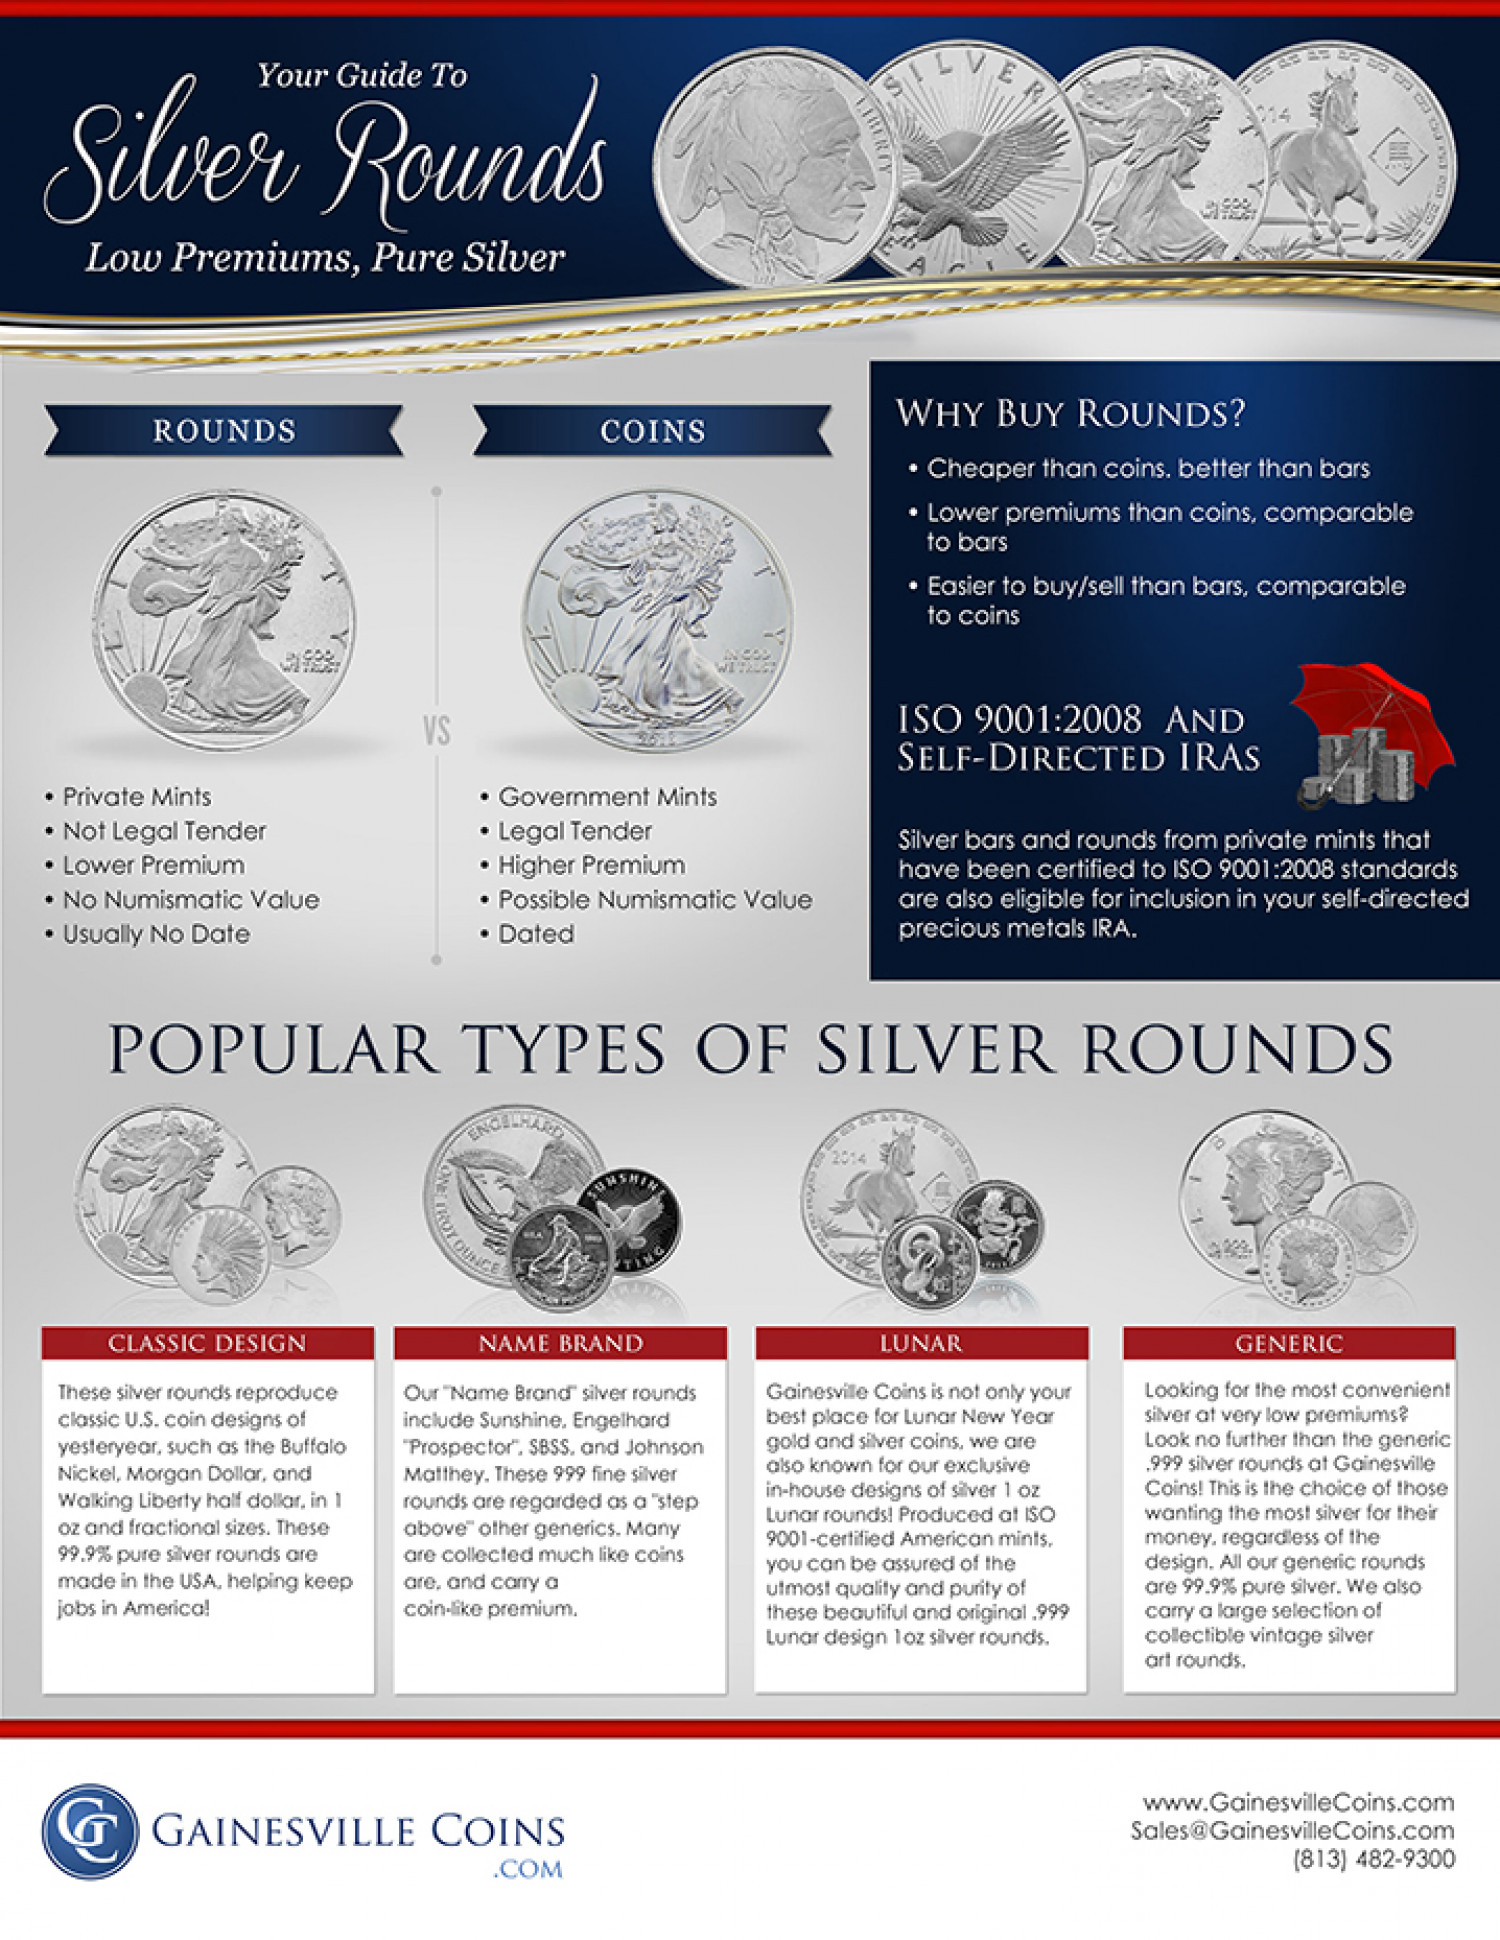 Your Guide to Silver Rounds: Low Premiums, Pure Silver Infographic